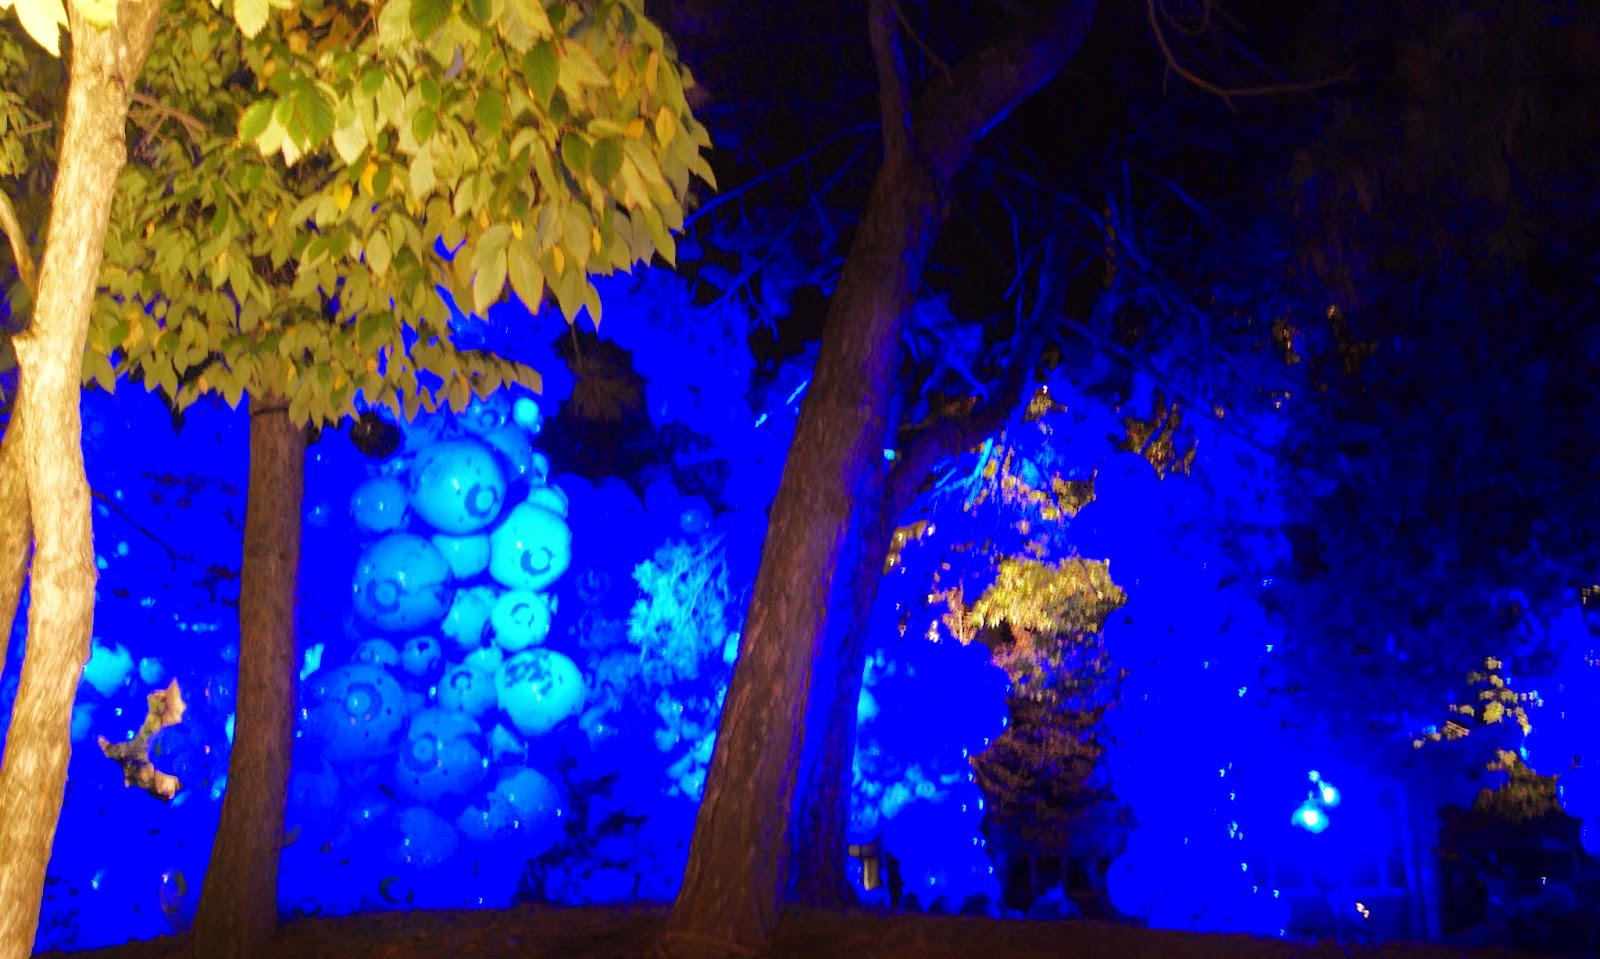 Toronto Nuit Blanche 2014: Walk among Worlds, 2011 by Maximo Gonzalez, Art, artmatters, culture, the purple scarf, melanie,ps, installation, performance, ontario, canada